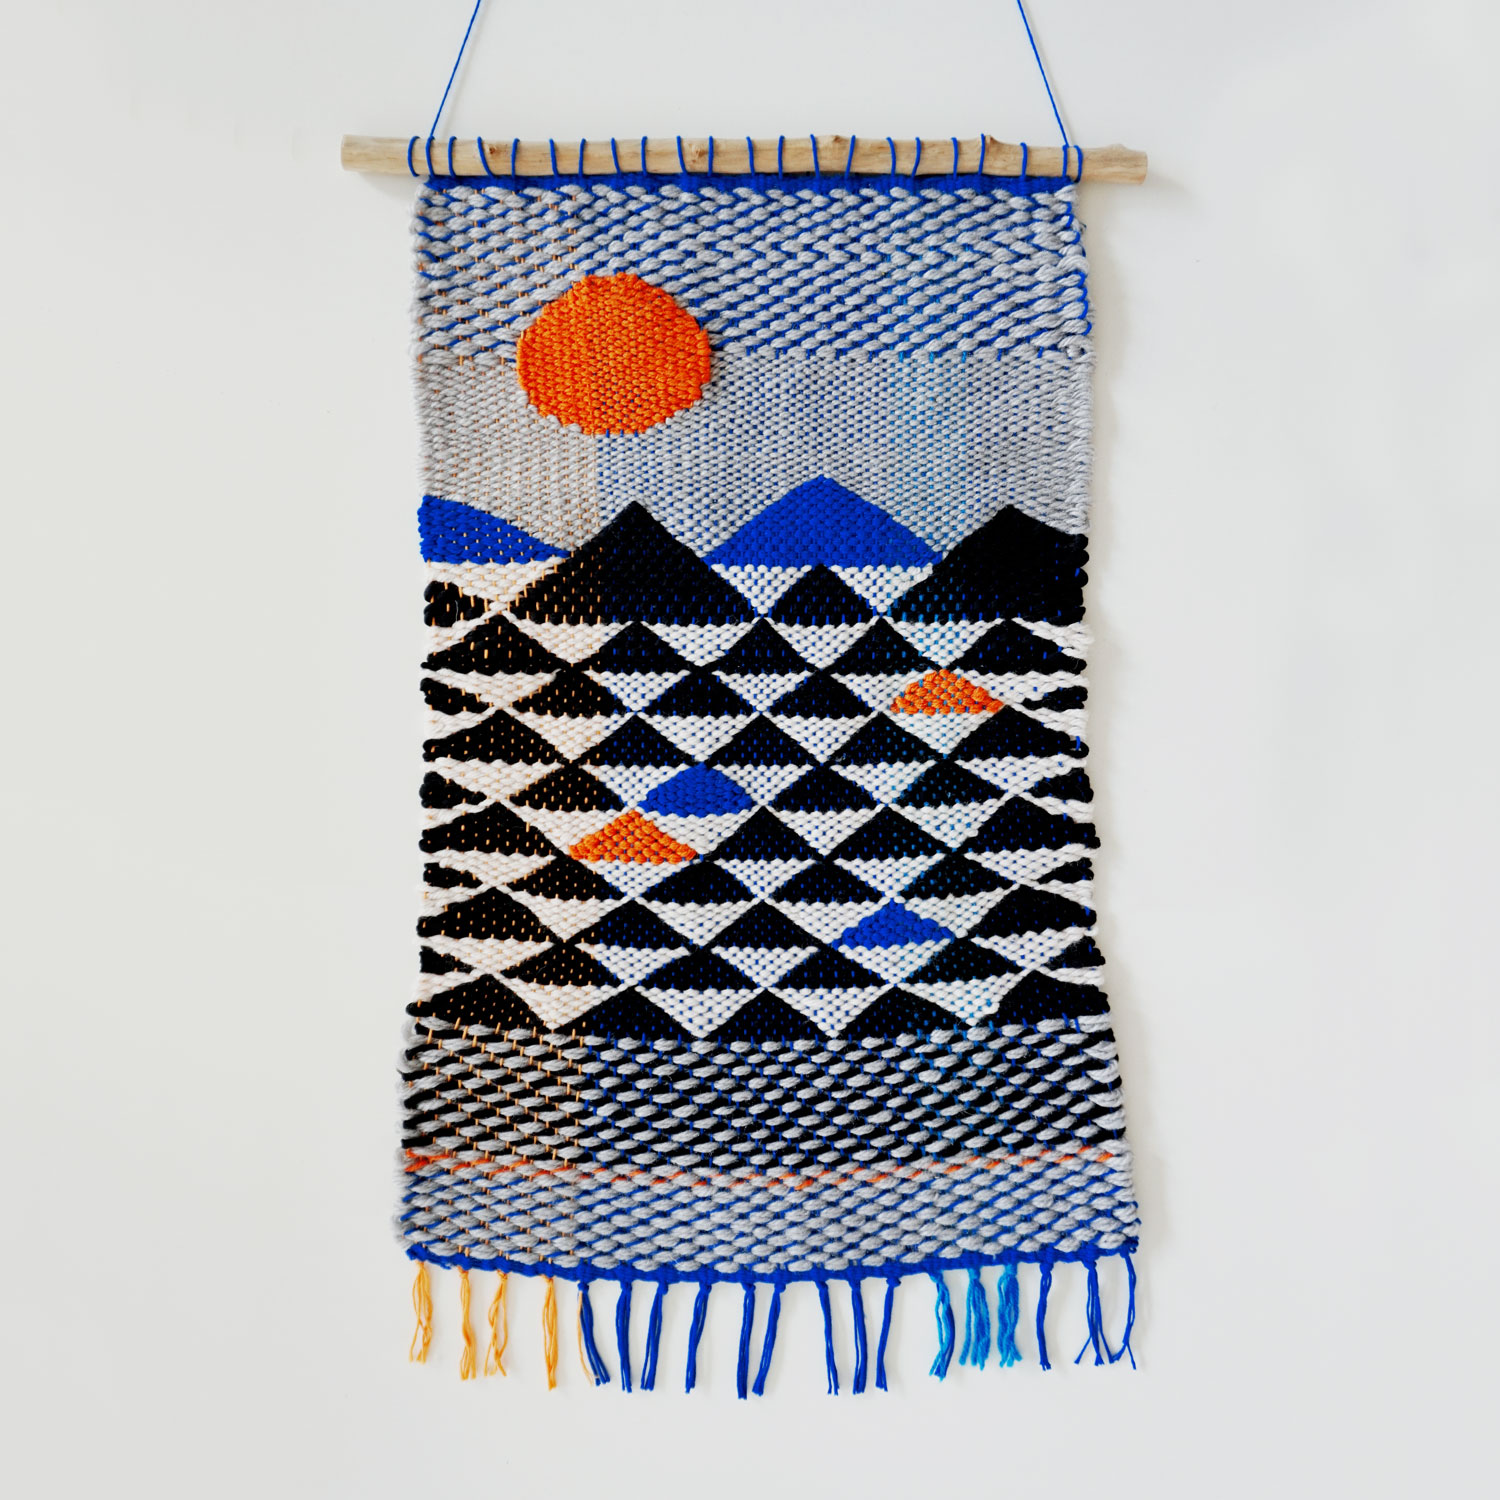 Abstract landscape wall tapestry featuring mountainous landscape and bright orange sun. Short fringe and natural branch hanging system.